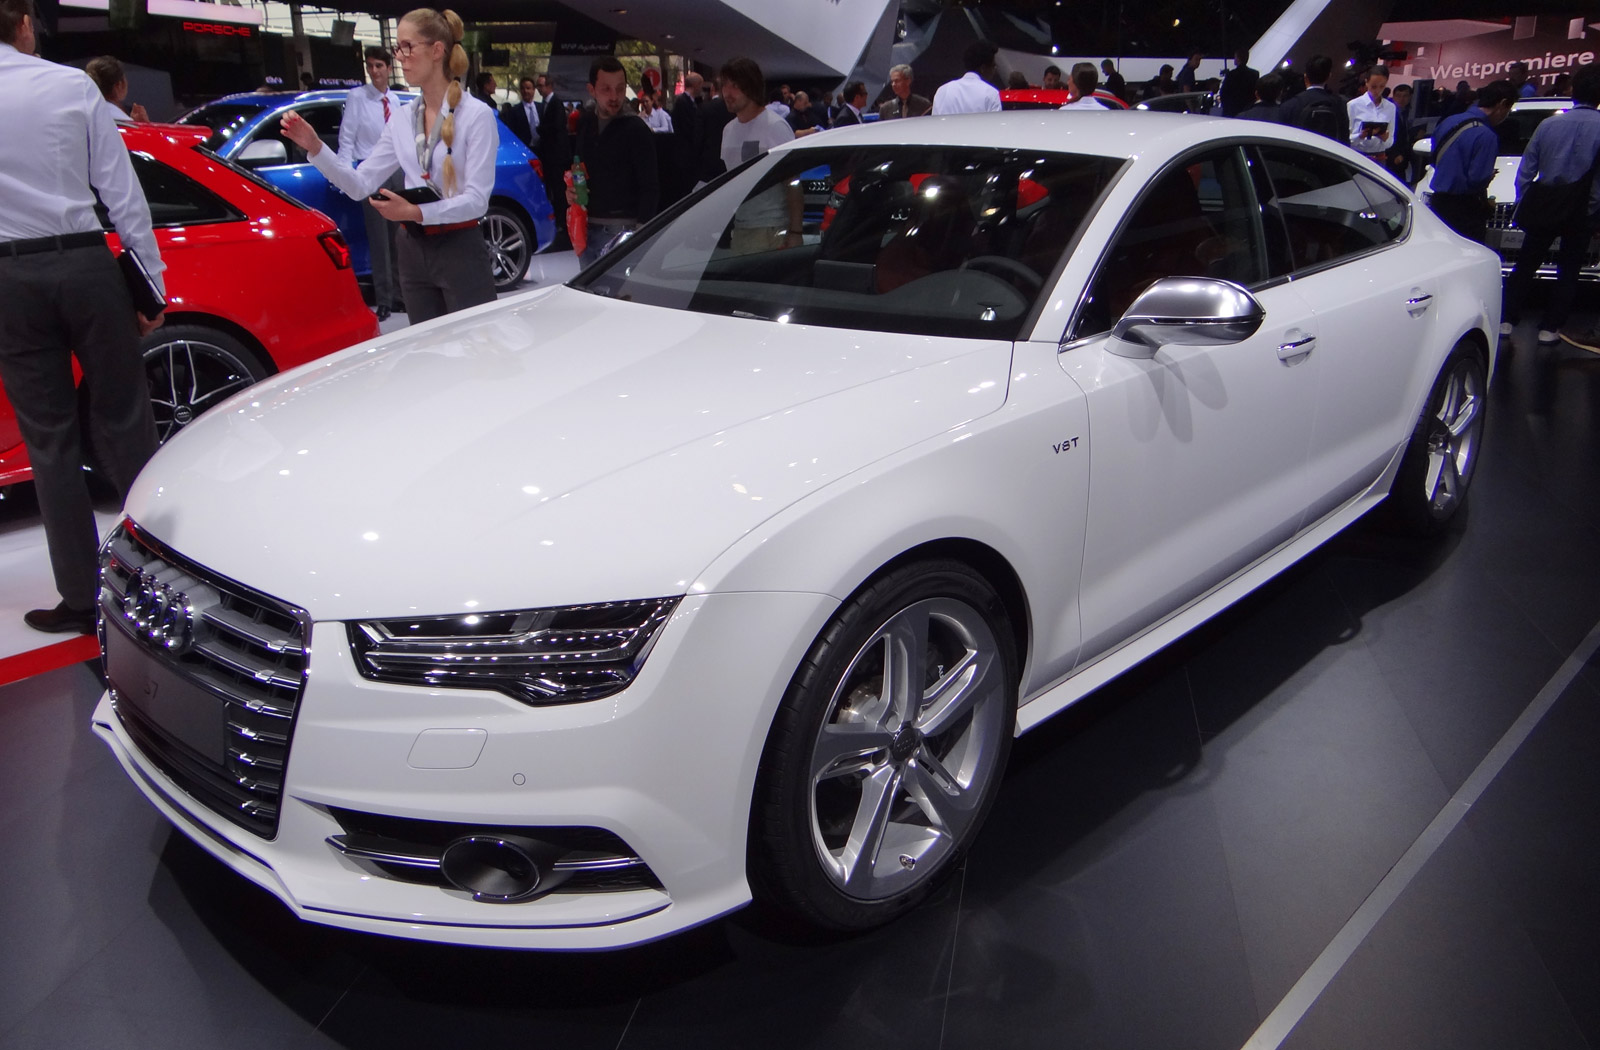 2016 Audi A7 And S7 Full Details Live Photos And Video